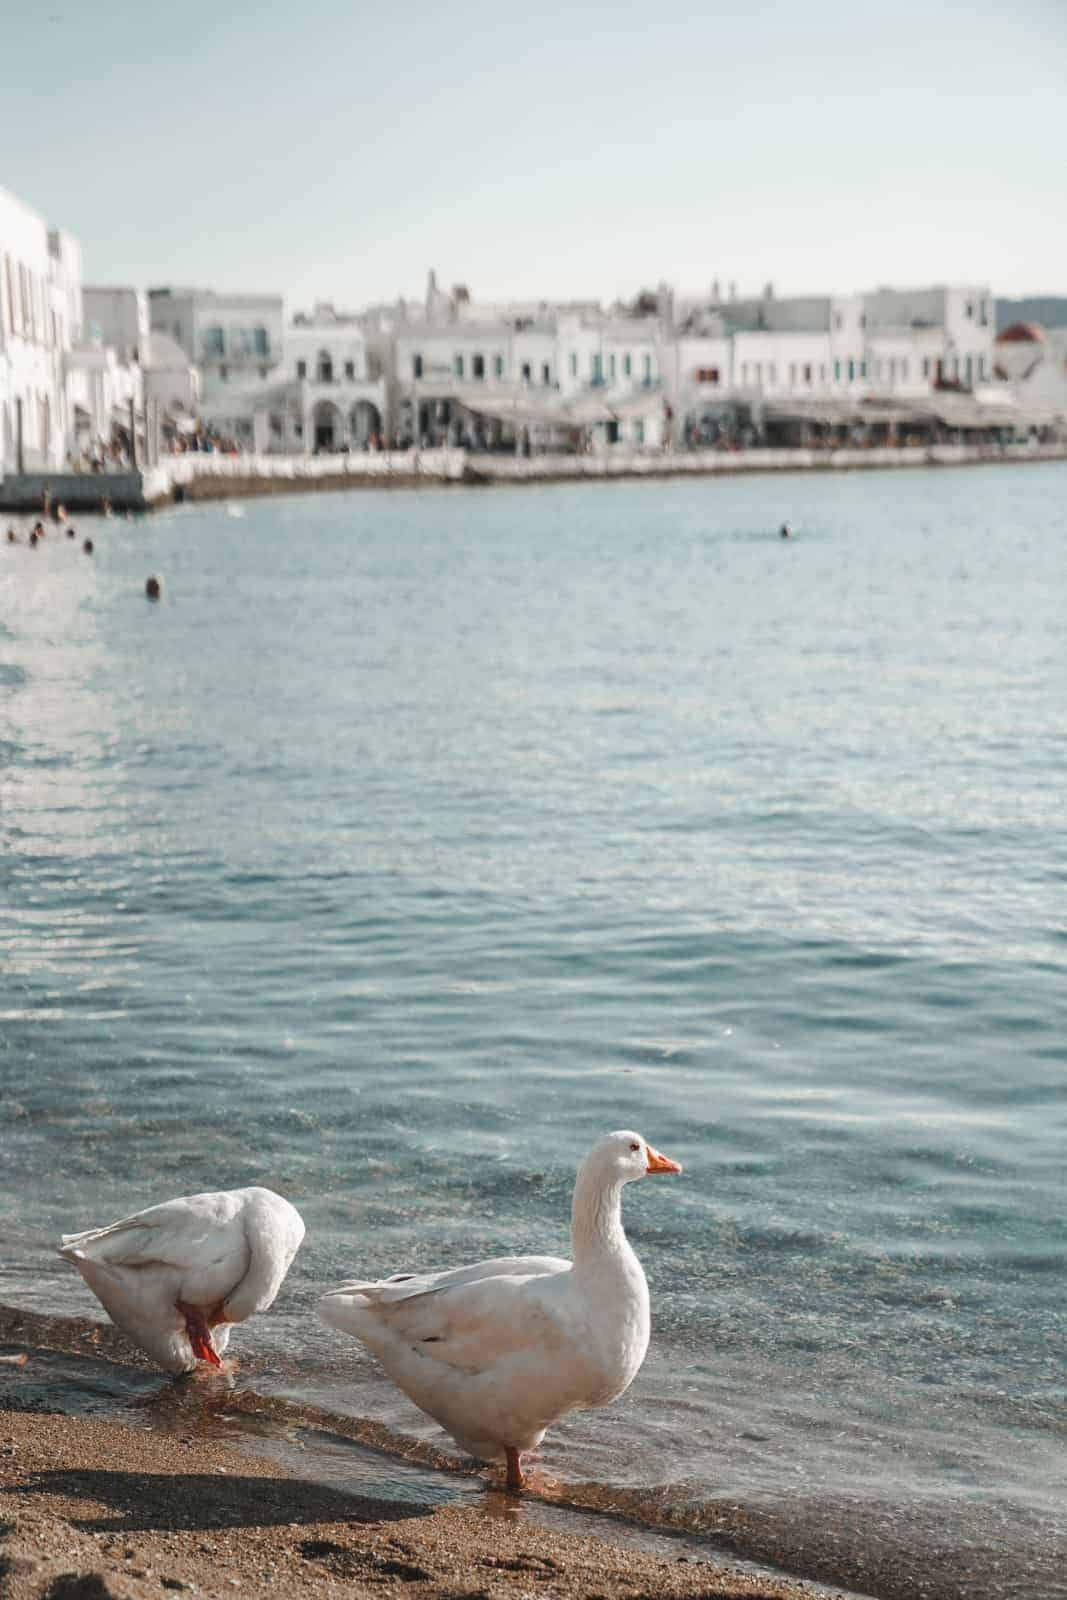 Ducks at waters edge in Mykonos, Greece taken by Maria who is giving her international travel tips.